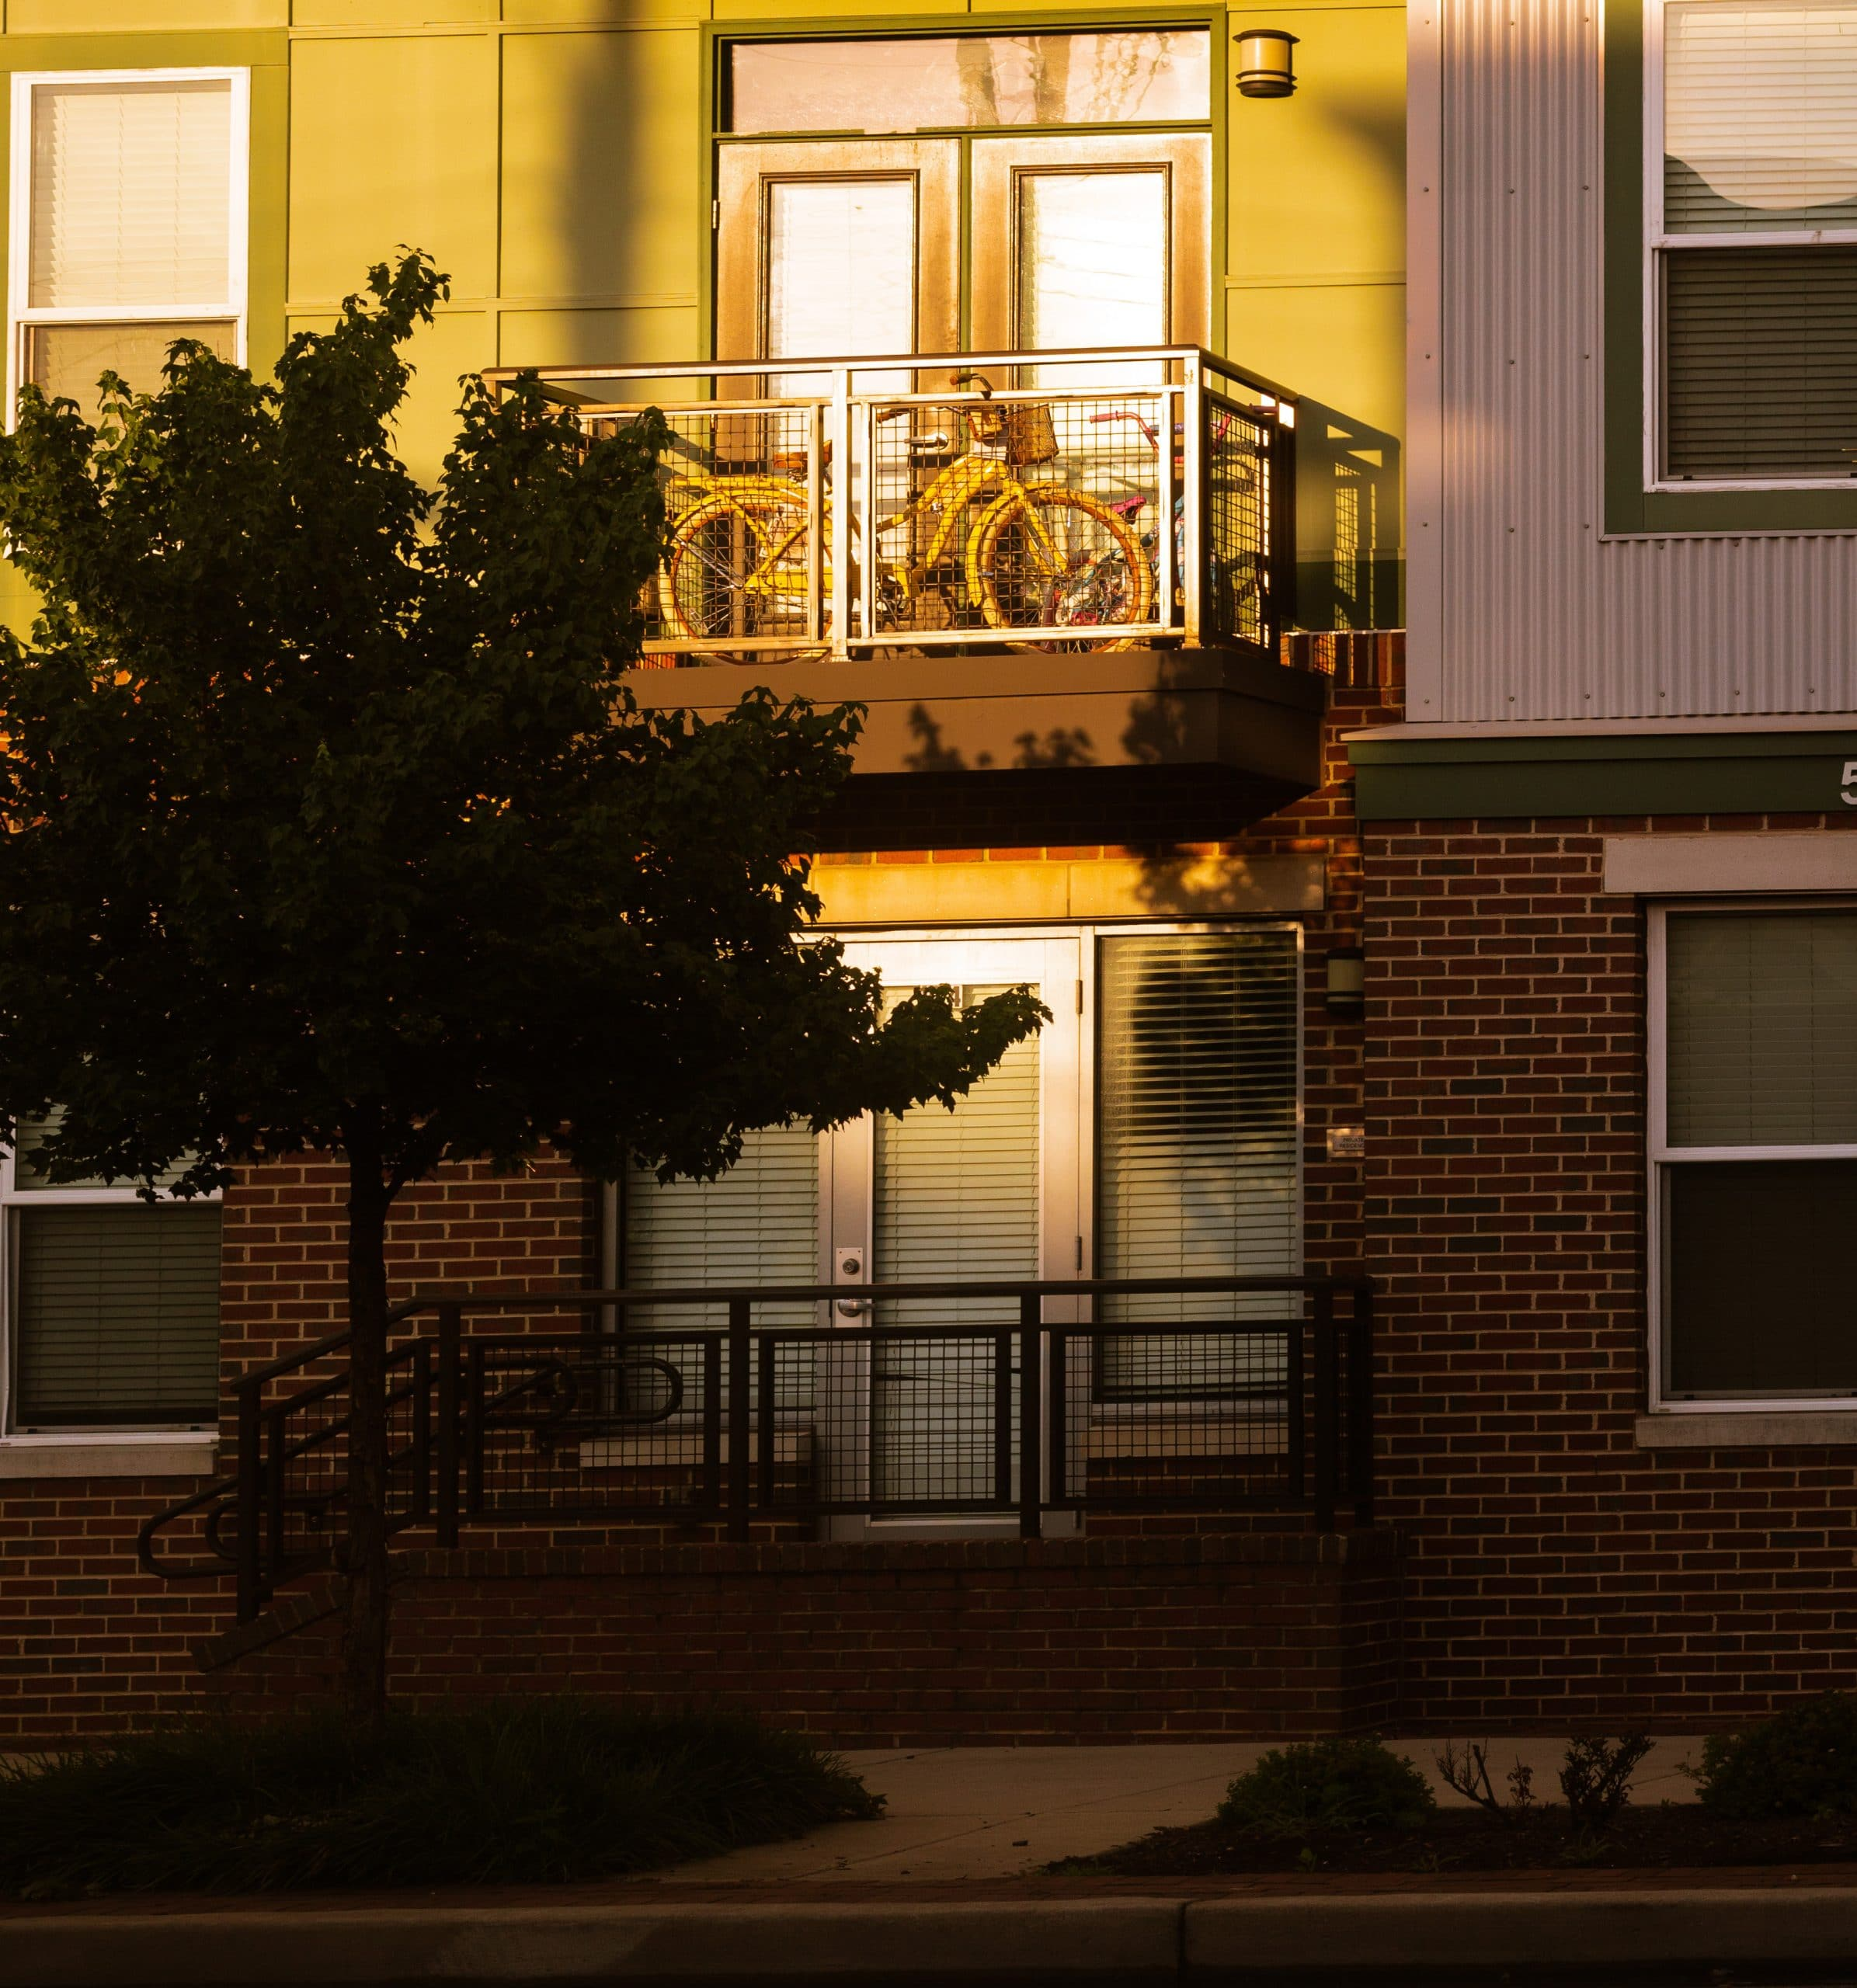 How Covid-19 is Impacting Tenant Interest in Phoenix Apartments